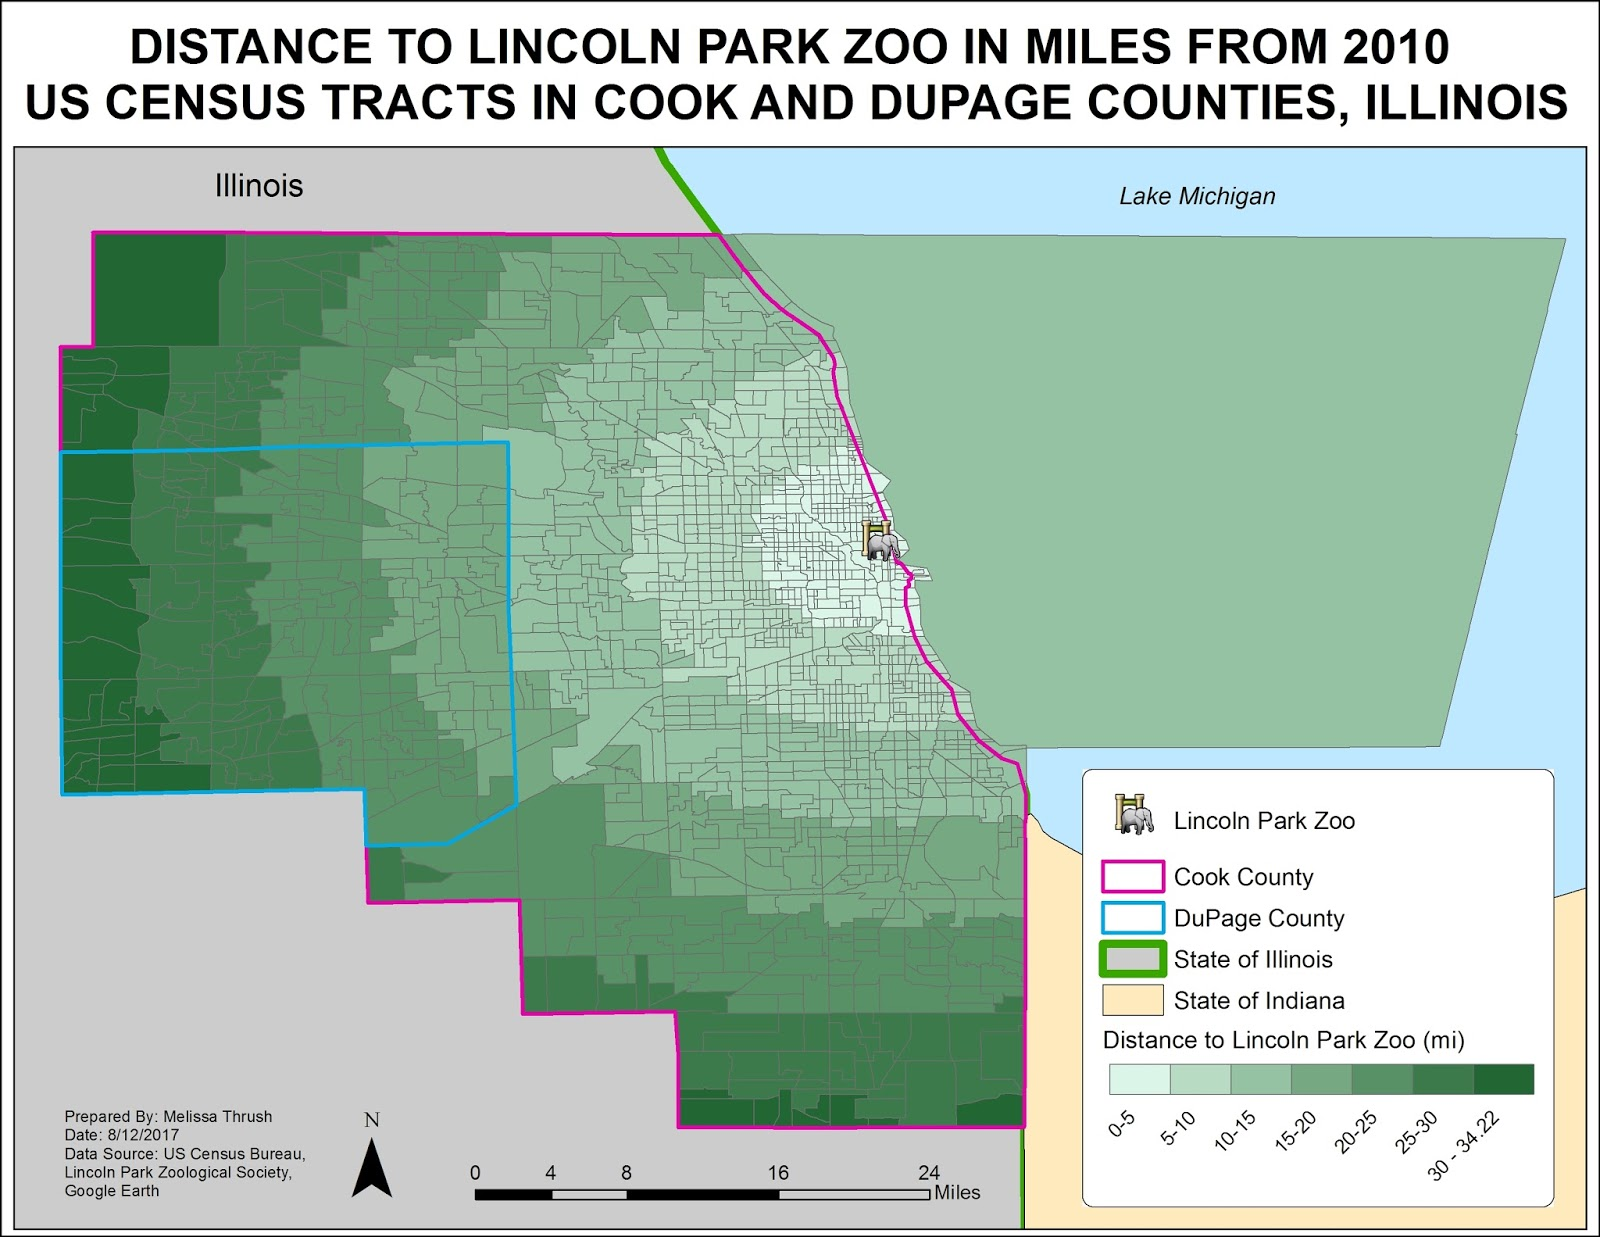 spatial access to lincoln park zoo from 2010